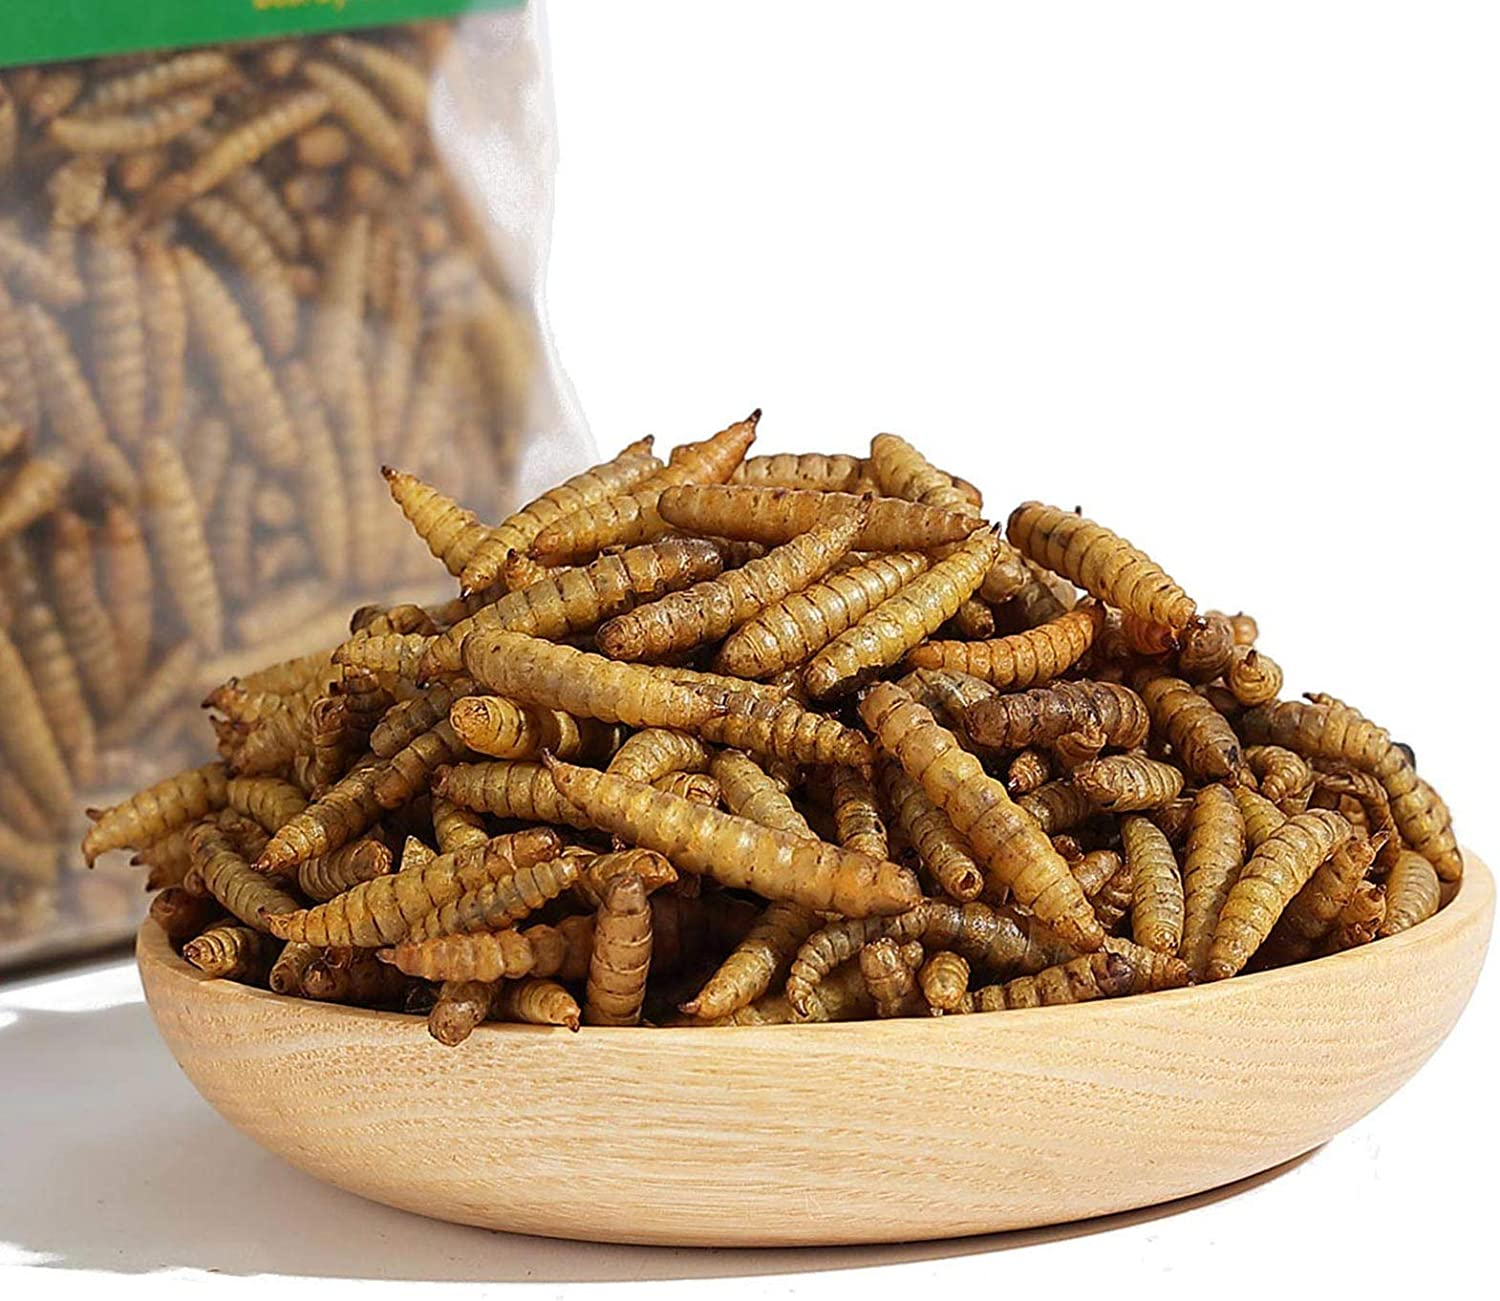 SUNBELY 2lb Reptile Food Dried Black Soldier Fly Larvae Pet Treats for Bearded Dragon Lizard Turtles Chameleon Frog Fish